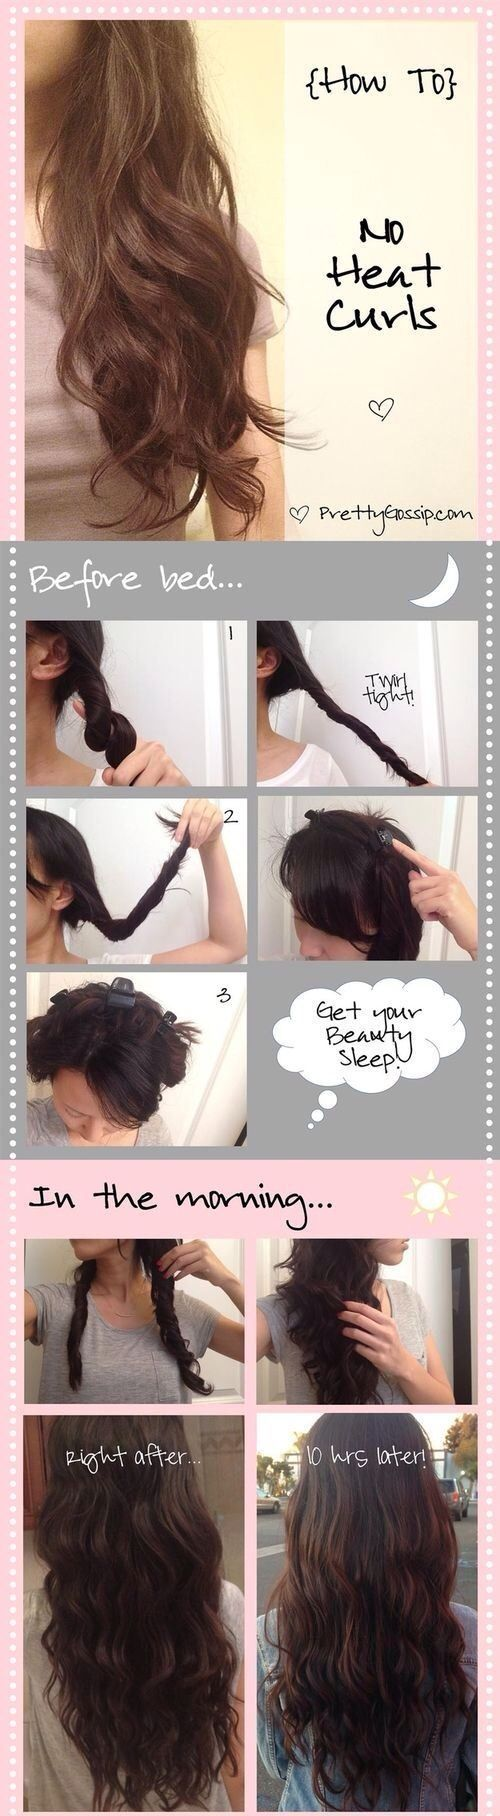 How to curl your hair without the heat. heritagebeau.com